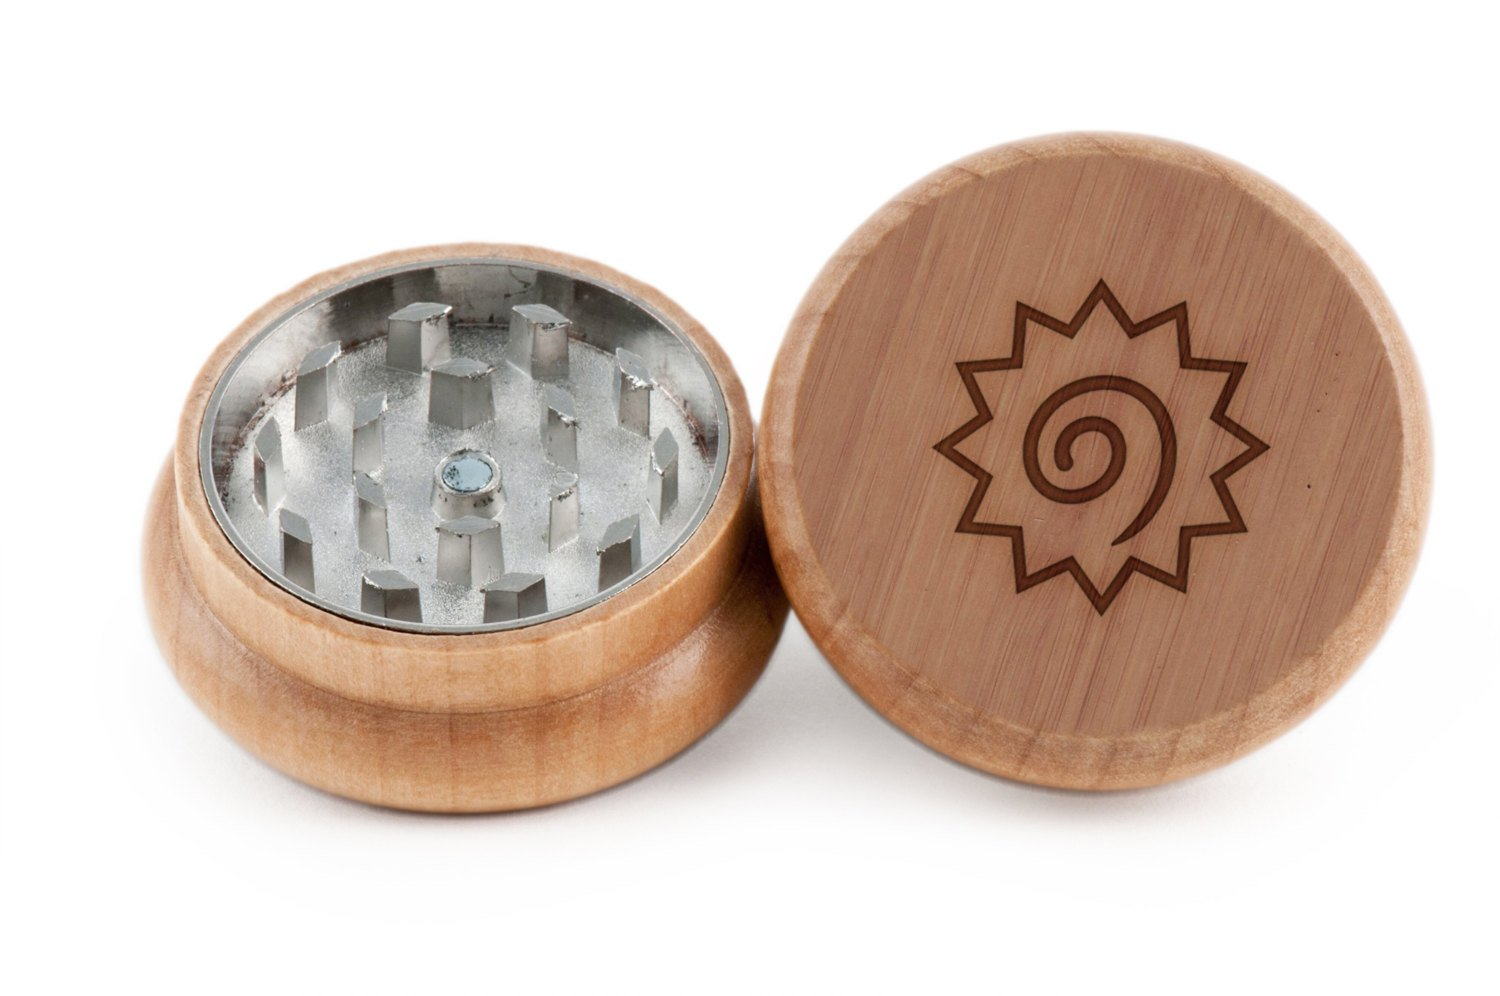 GrindCandy Spice and Herb Grinder - Laser Etched Naruto Design - Manual Oak Pepper Grinder